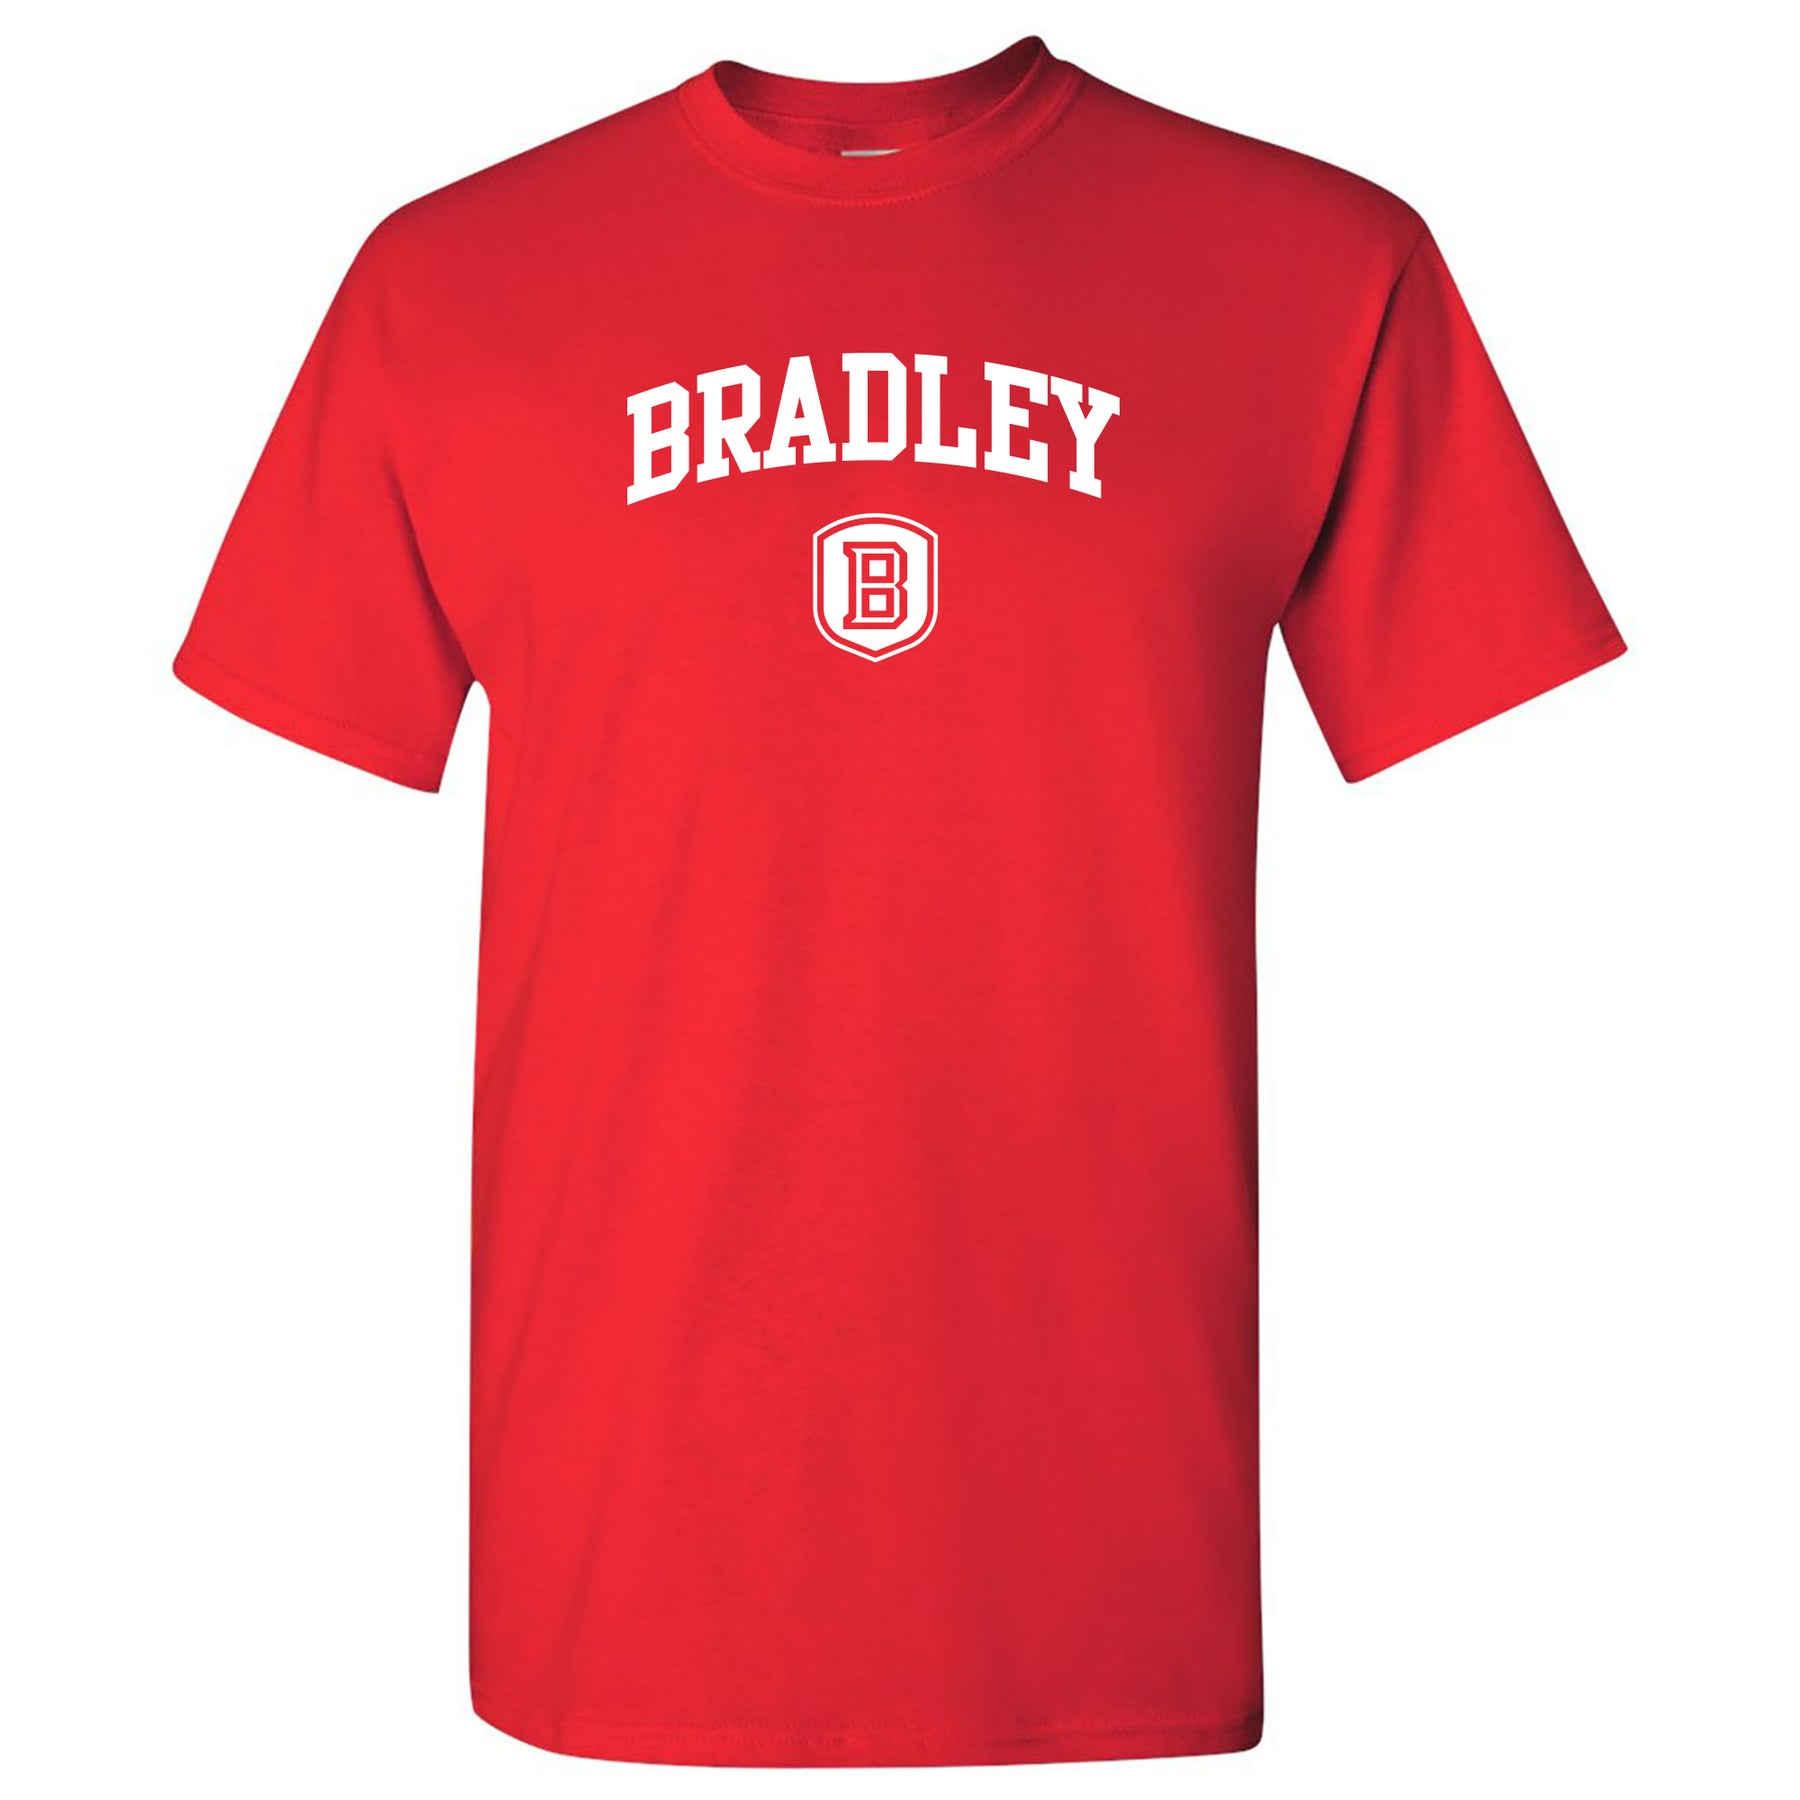 NCAA Bradley Braves T-Shirt V1